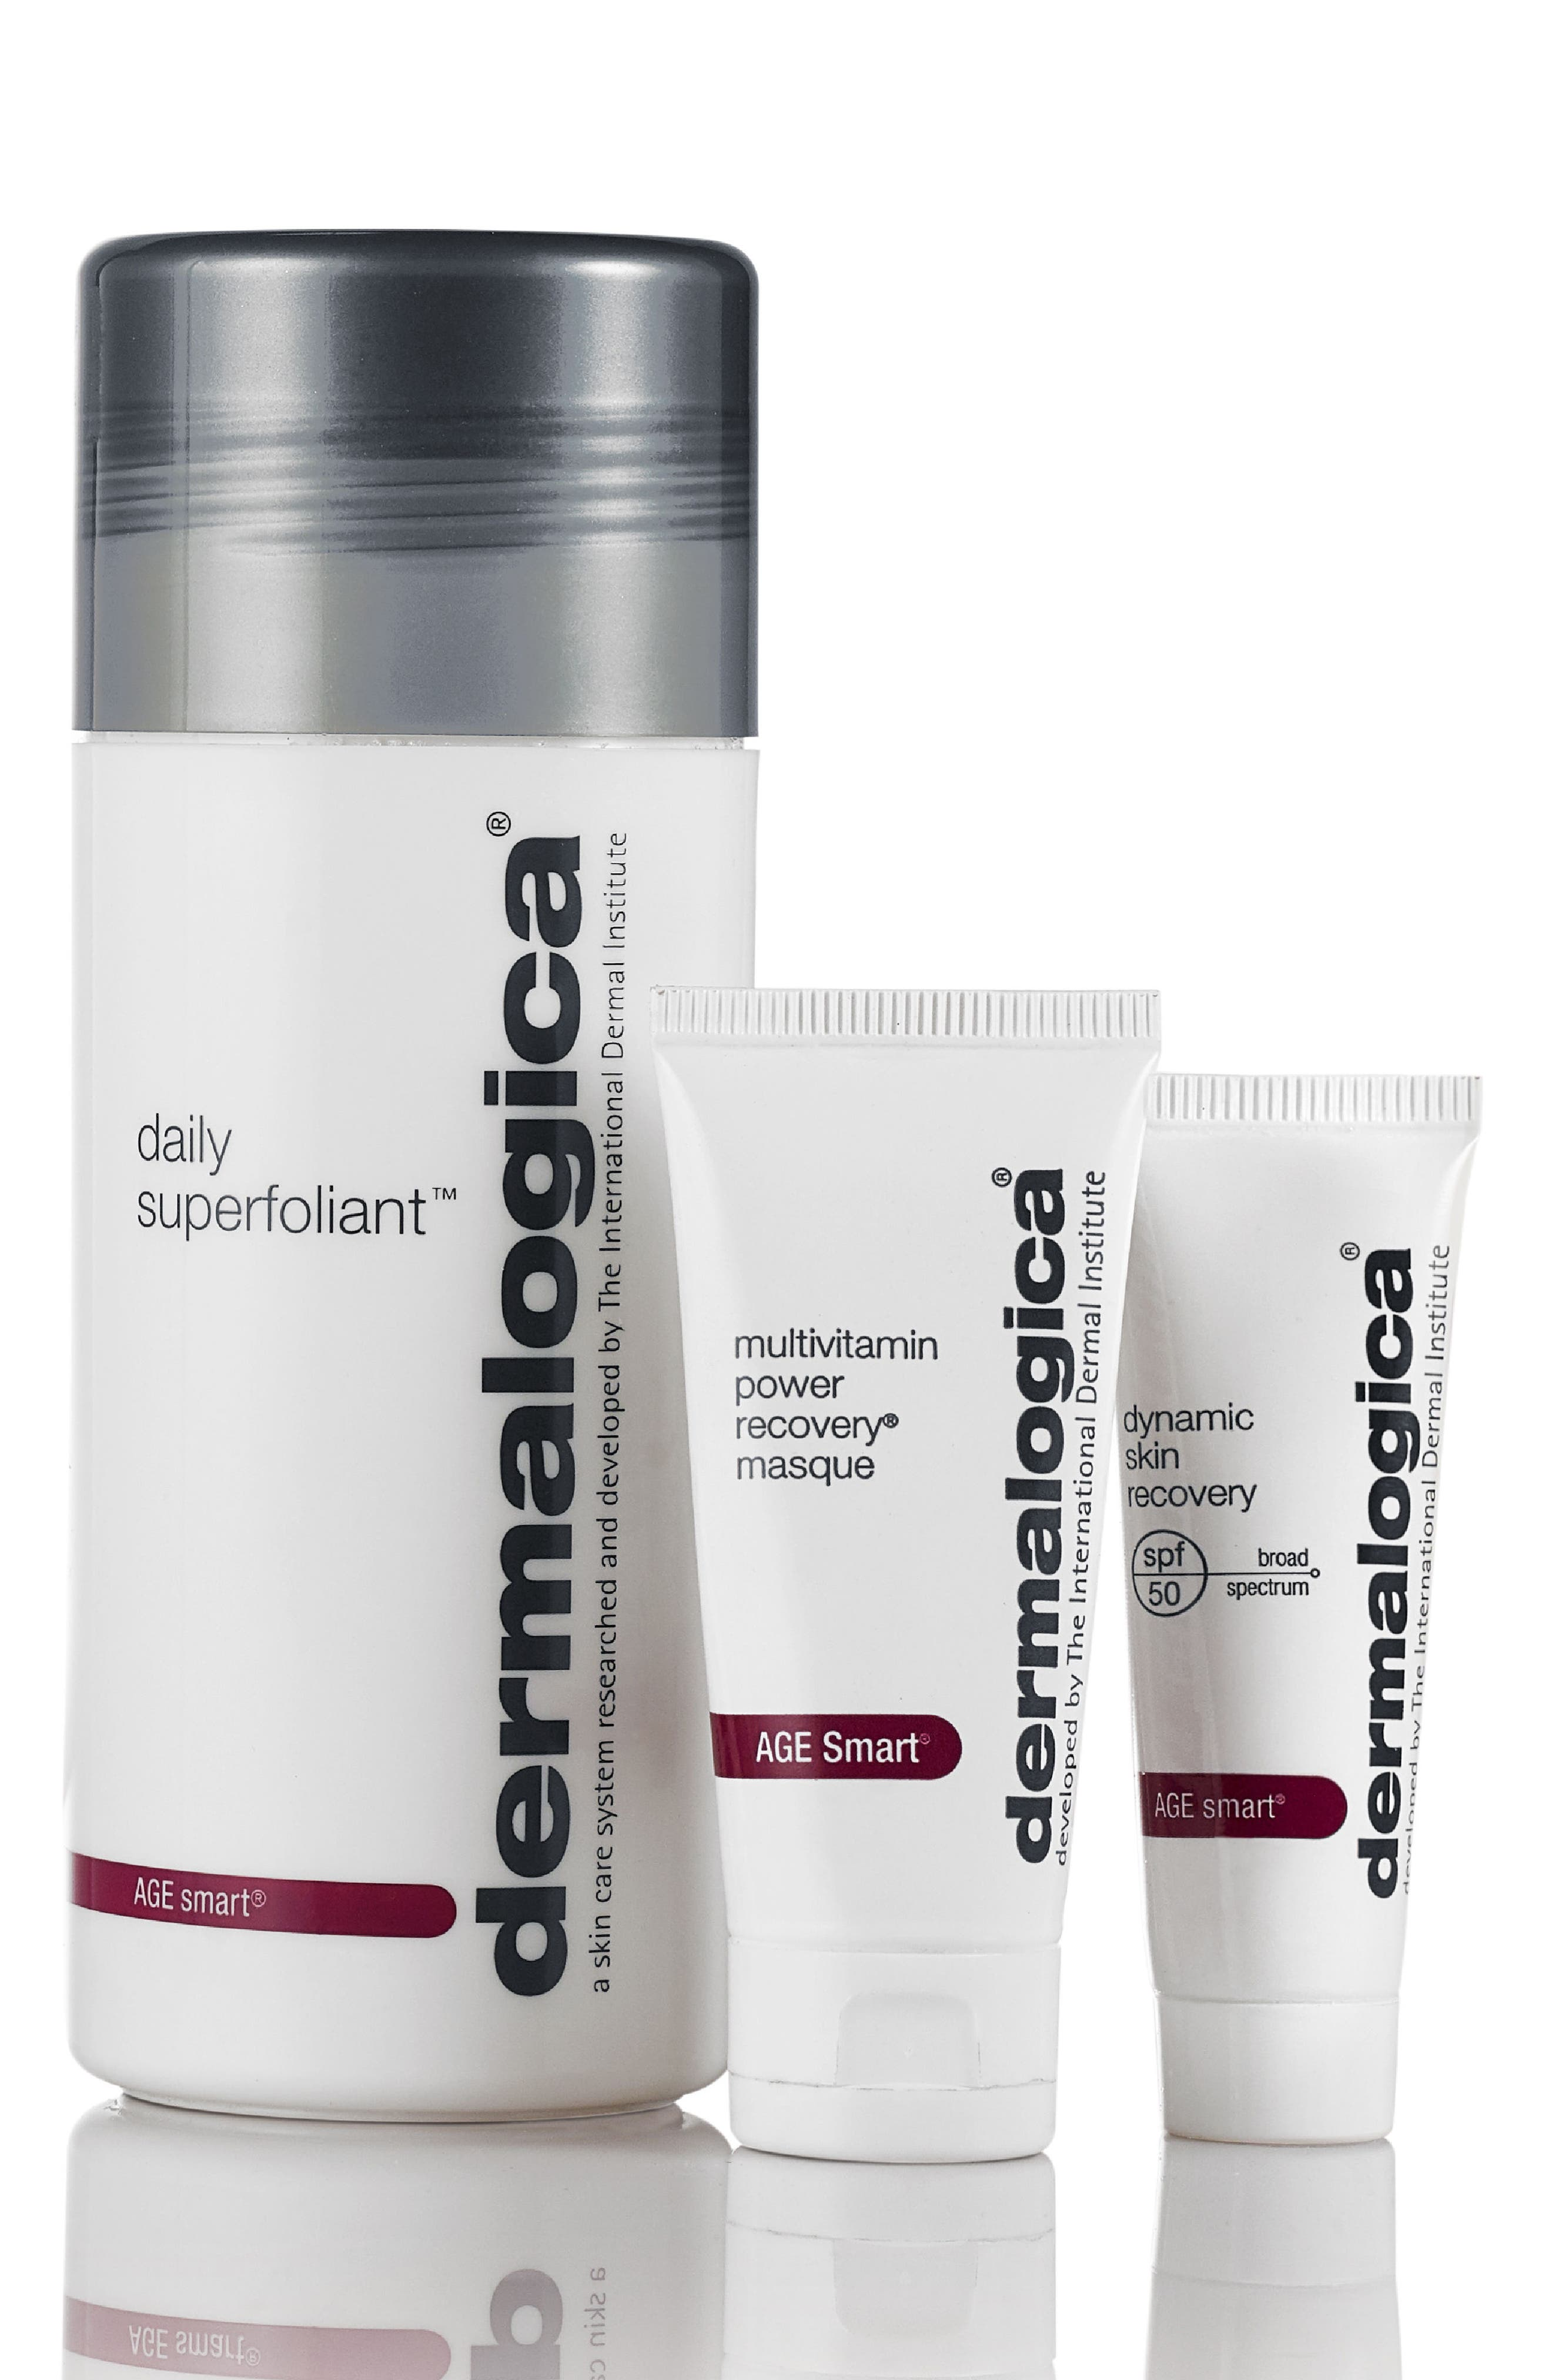 Alternate Image 1 Selected - dermalogica® Age Smart Anti-Aging Power Trio ($89 Value)